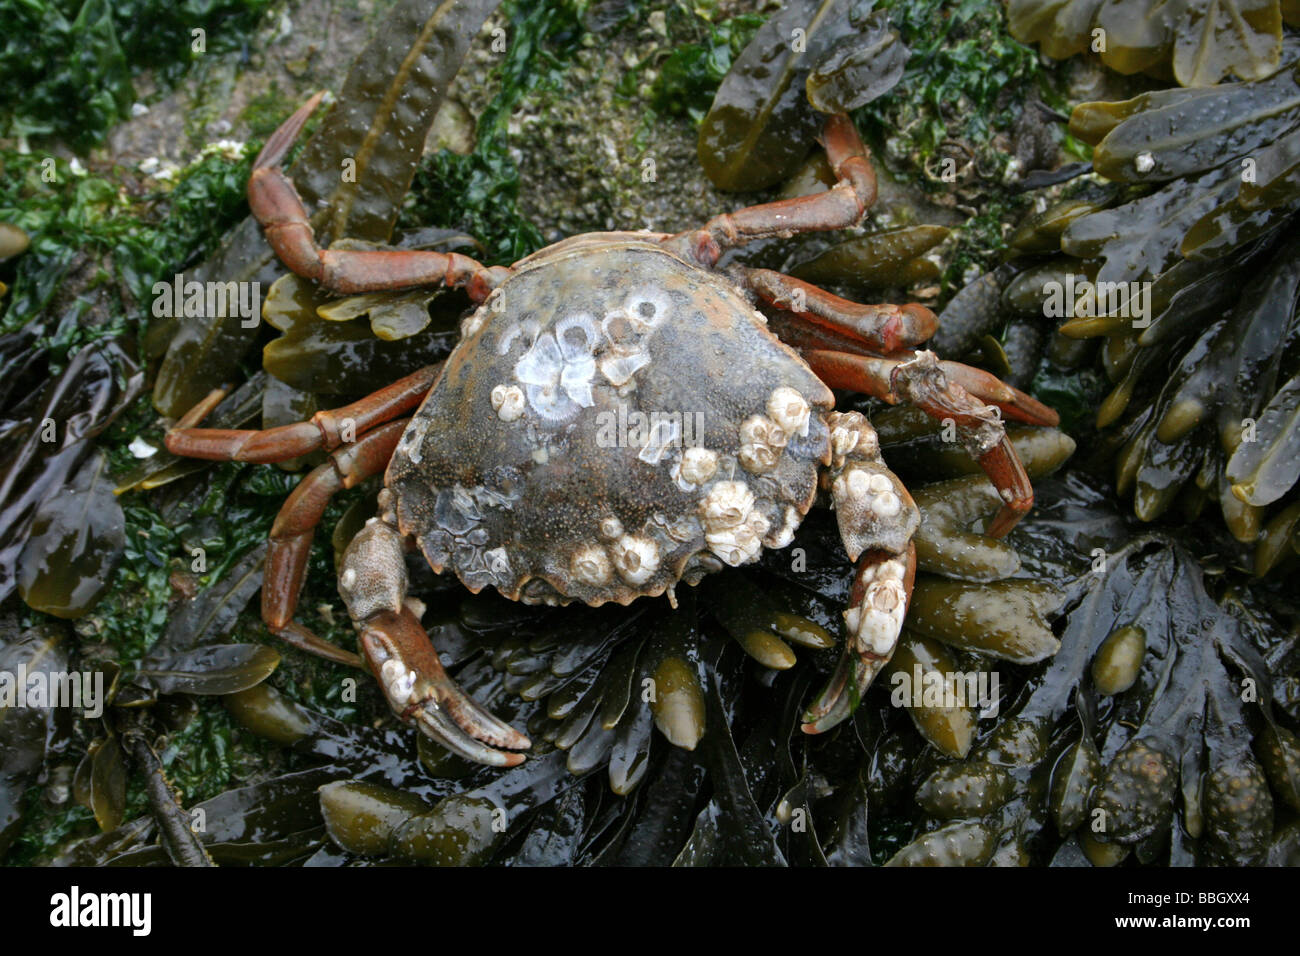 Common Shore Crab Carcinus maenas on Spiral Wrack Fucus spiralis Covered Rock Taken at New Brighton, The Wirral, Stock Photo